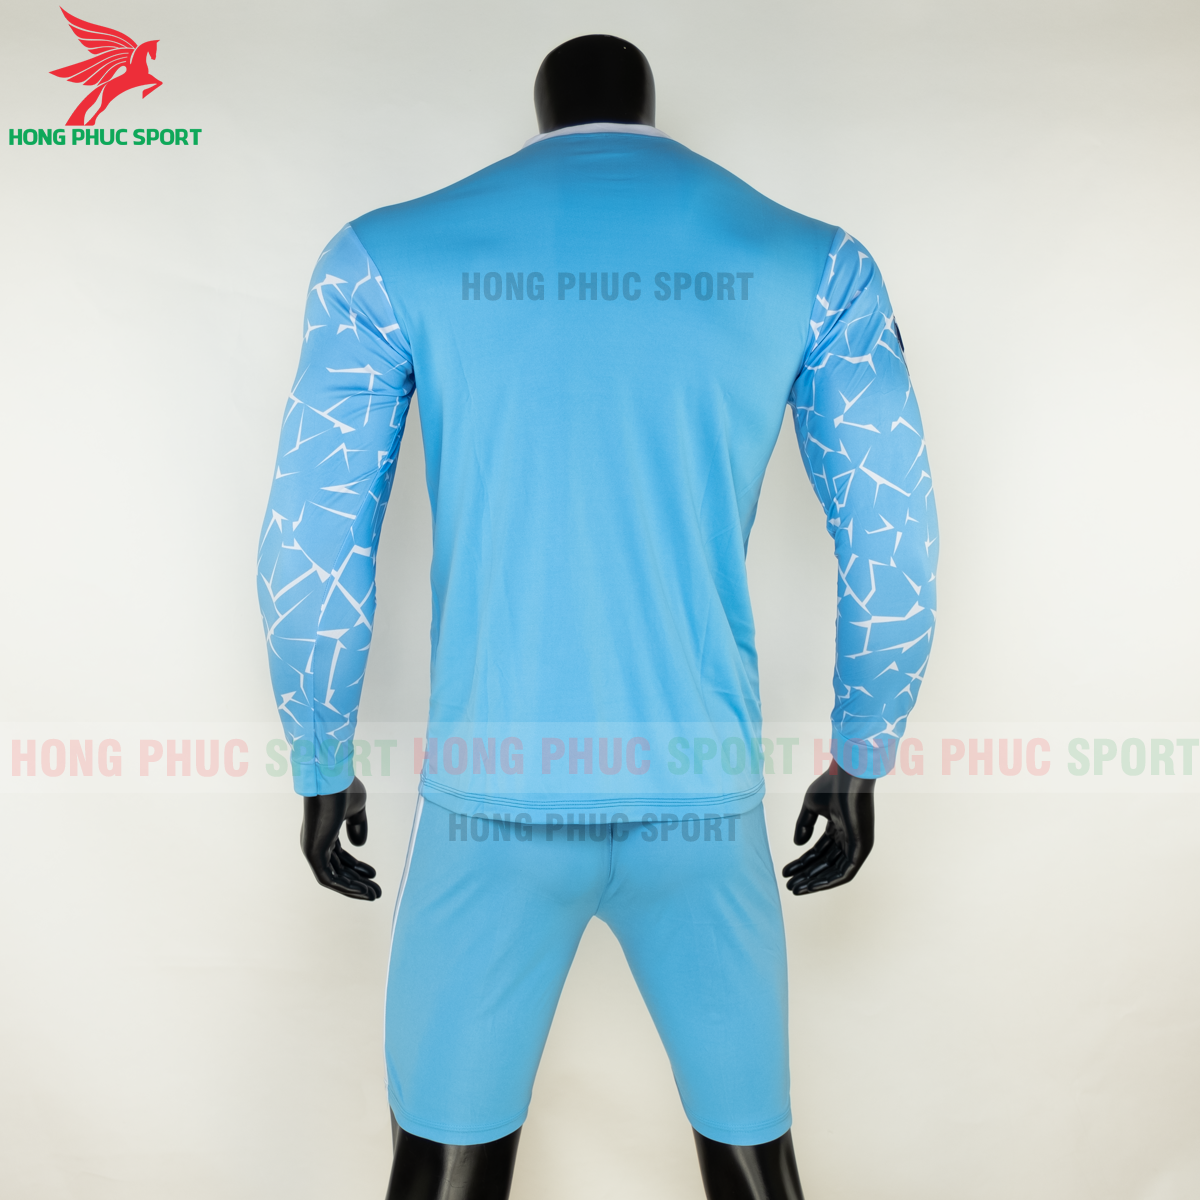 https://cdn.hongphucsport.com/unsafe/s4.shopbay.vn/files/285/ao-dai-tay-manchester-city-2020-san-nha-8-5f8fdbefabcb7.png